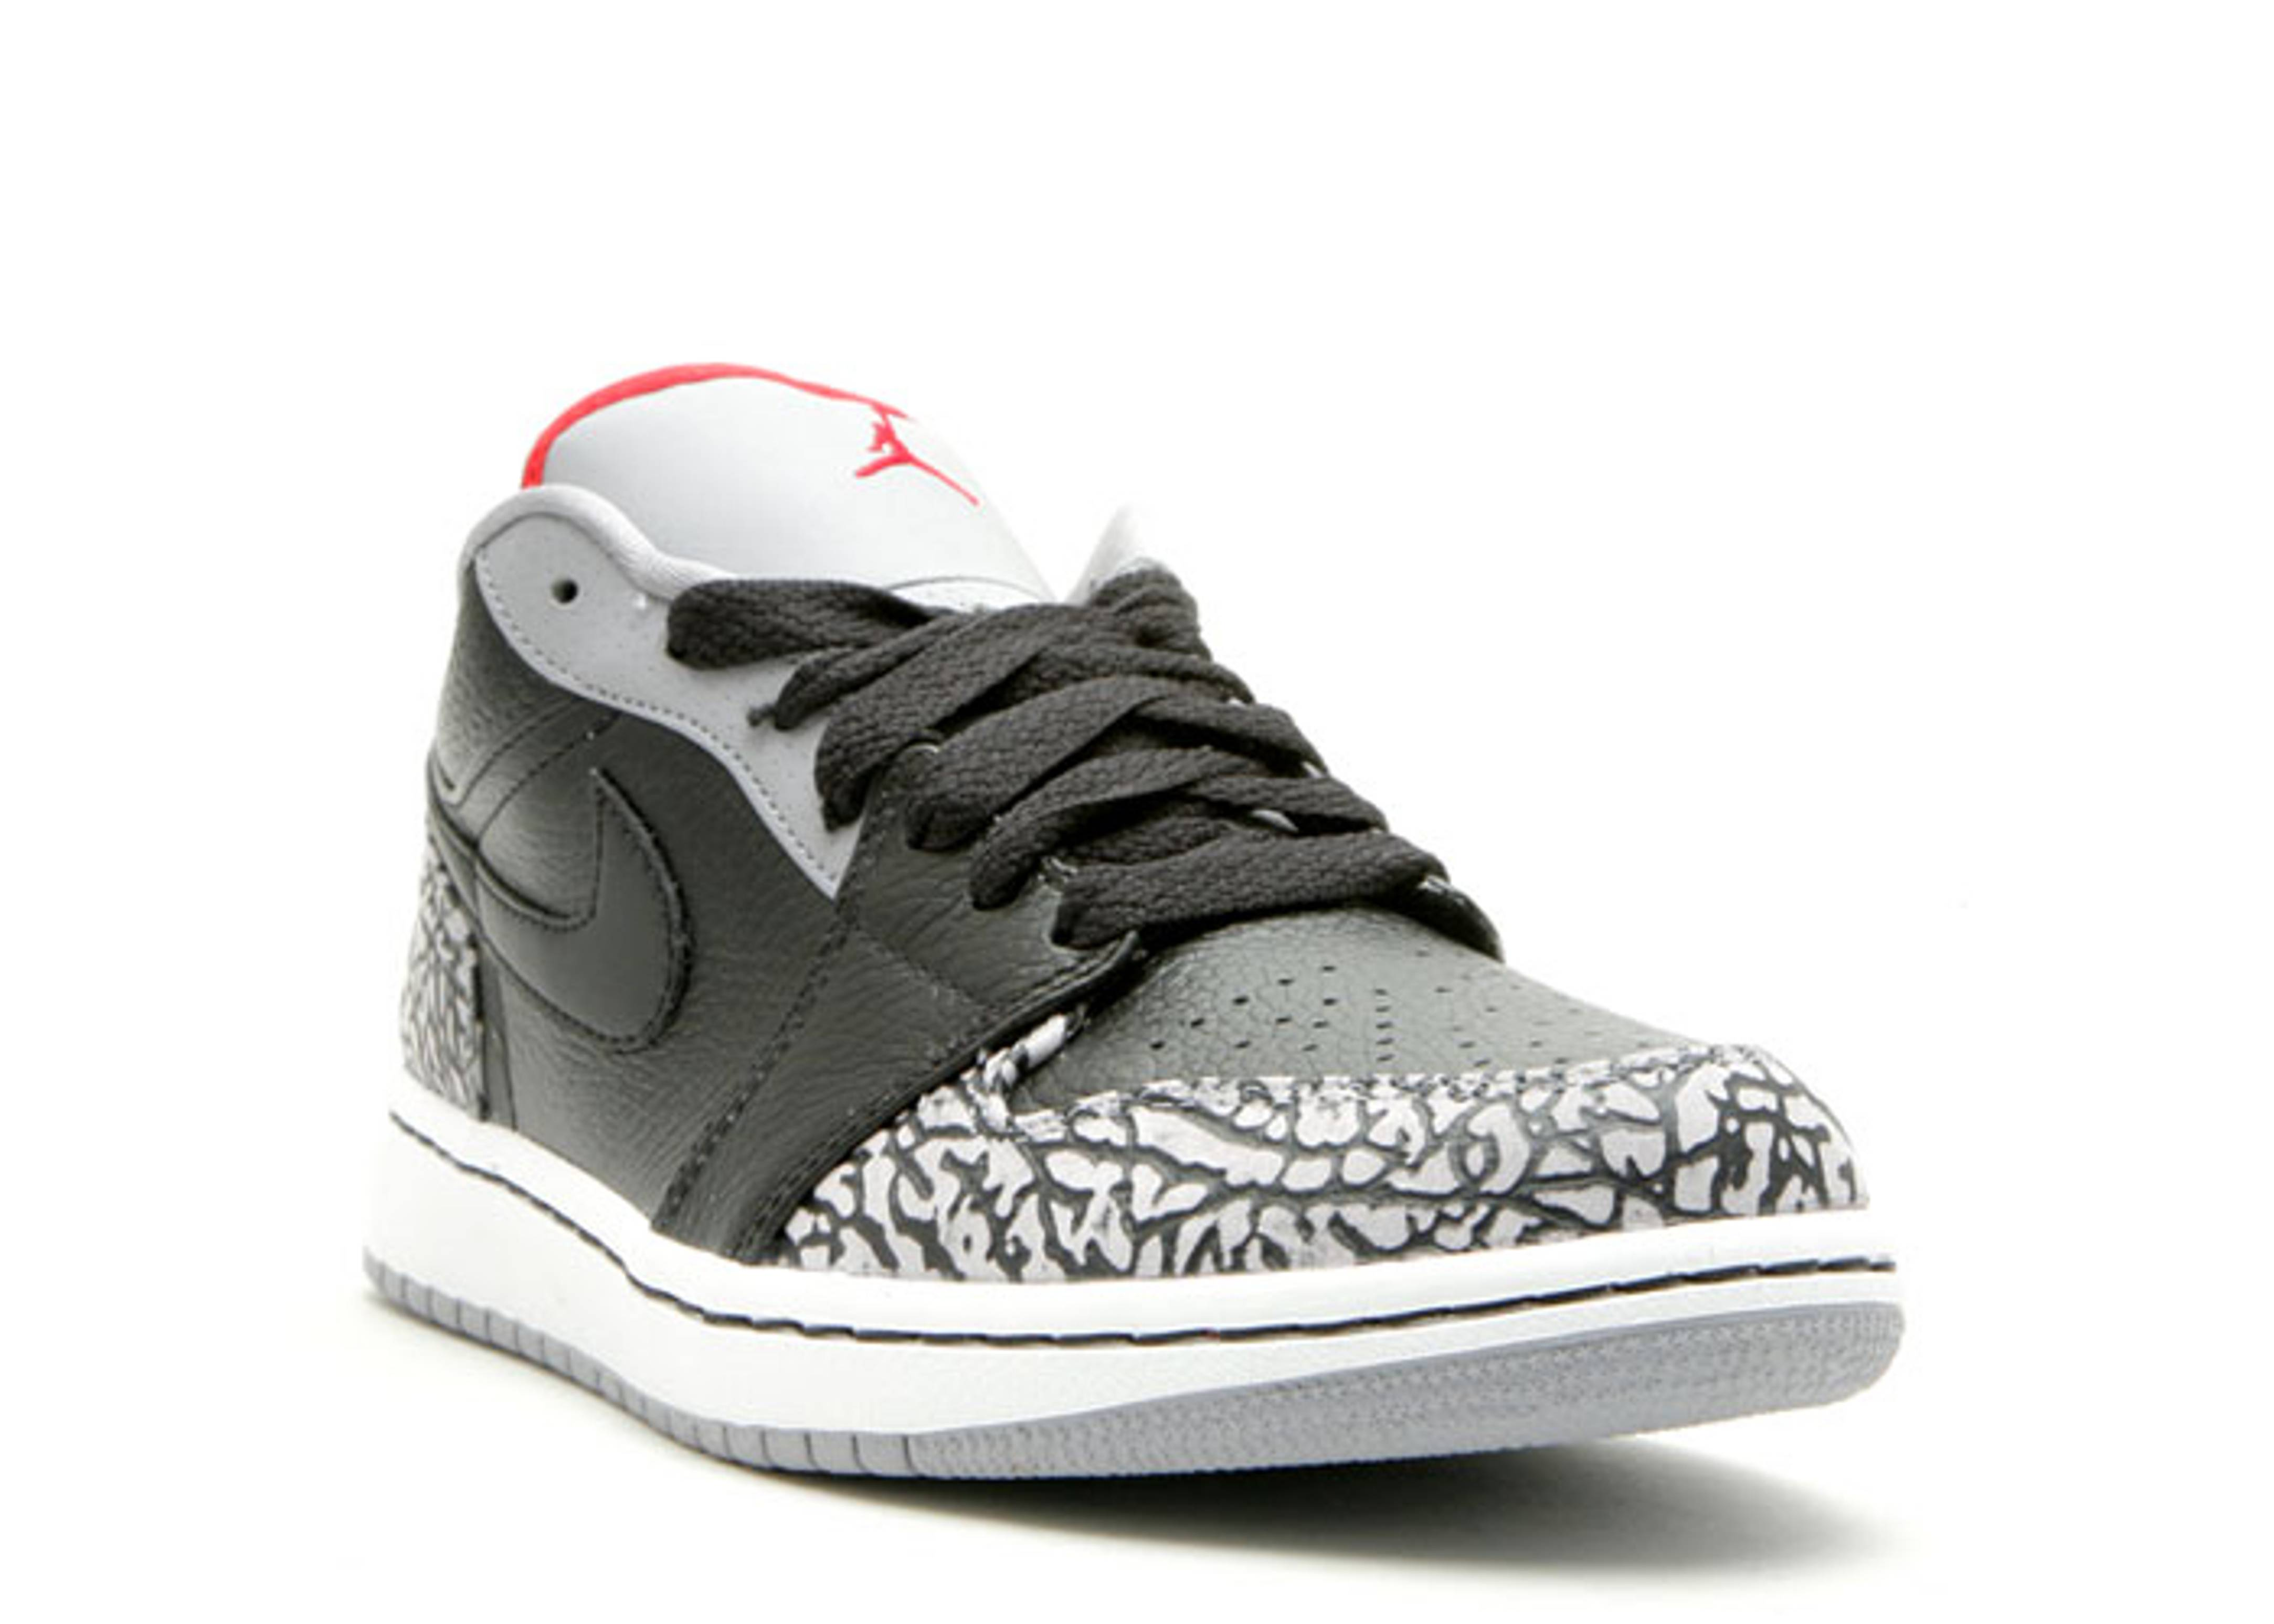 span itempropnameAir Jordan 1 Retro White Pink Grey Womens Shoespan